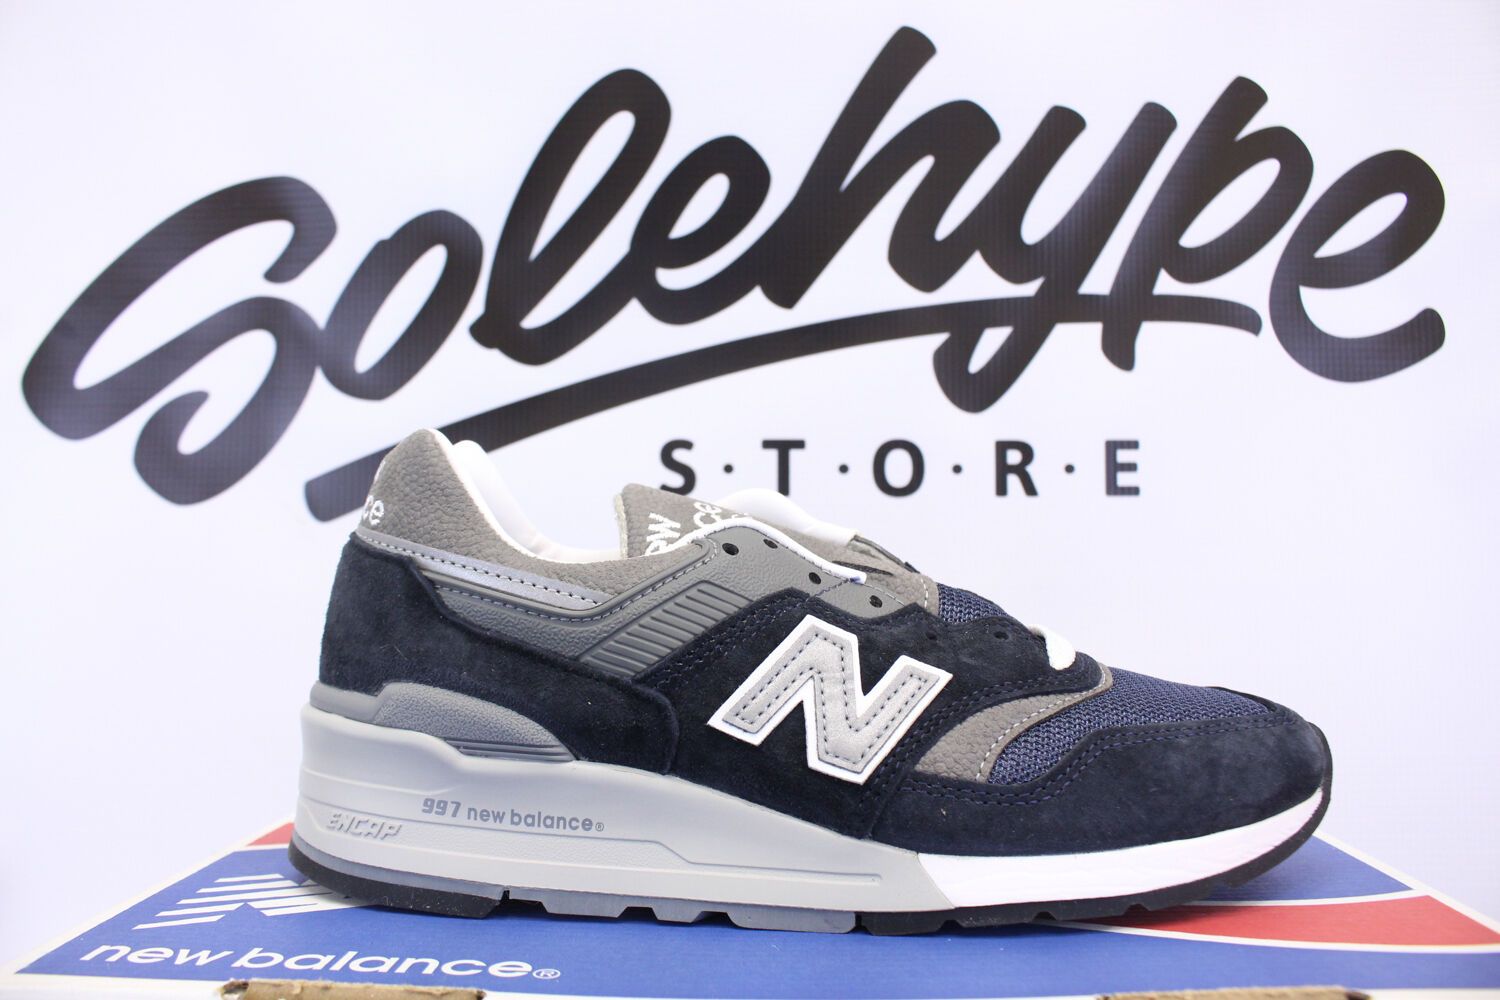 NEW BALANCE 997 NAVY BLUE GREY OG REISSUE NB MADE IN THE USA M997NV SZ 5.5